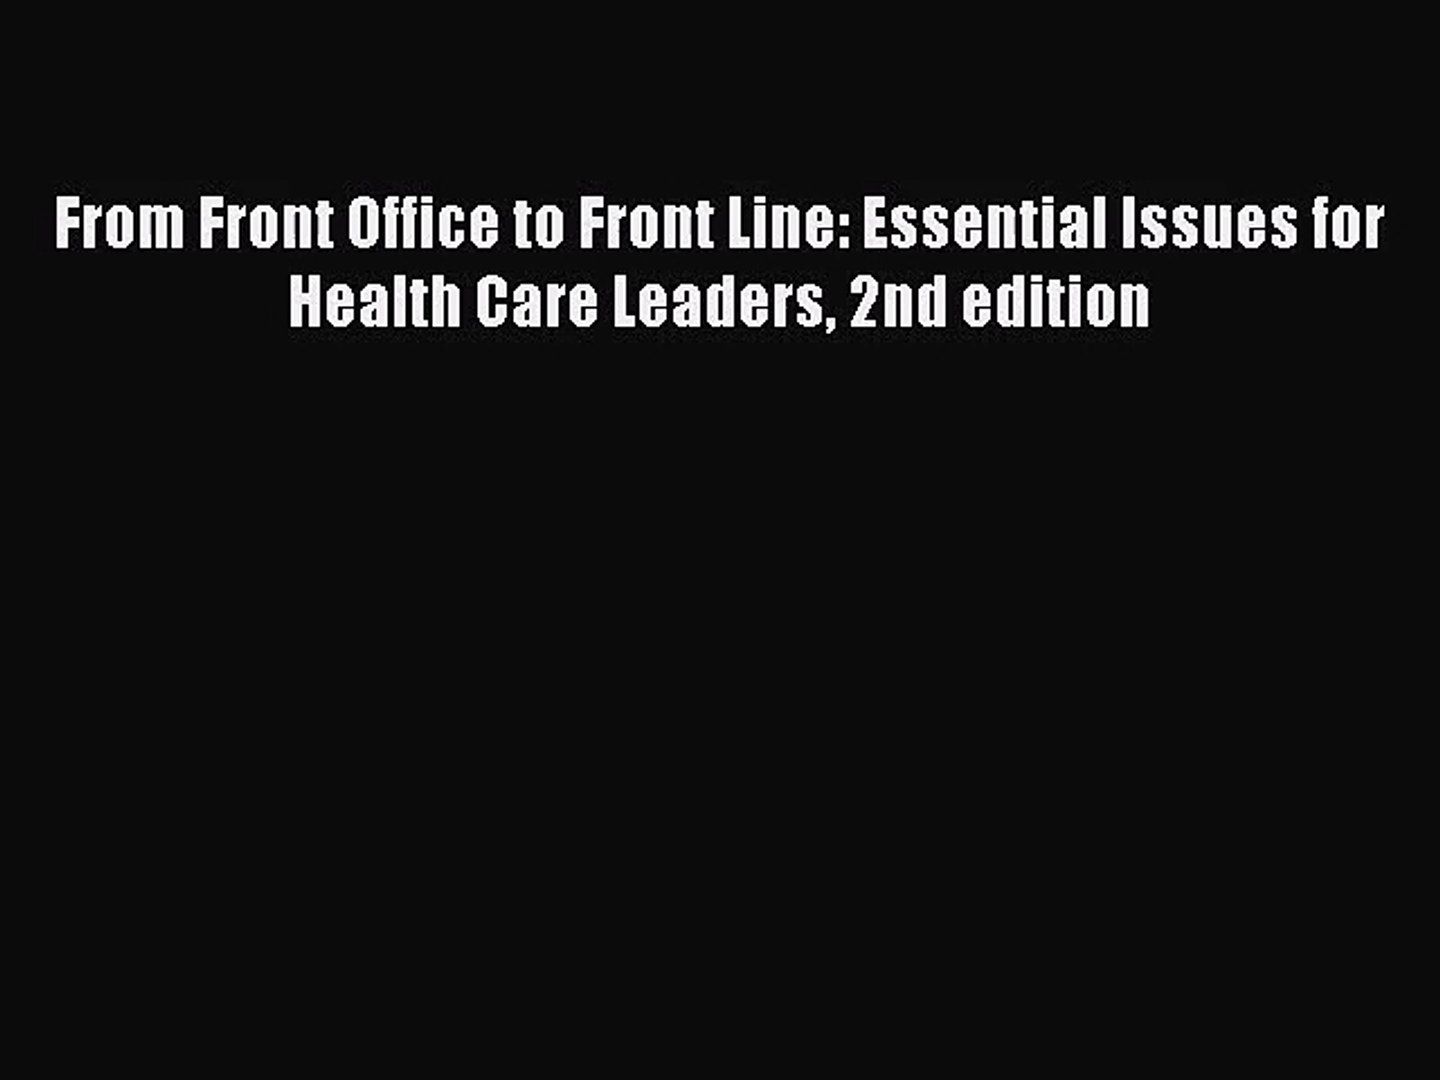 [PDF Download] From Front Office to Front Line: Essential Issues for Health Care Leaders 2nd